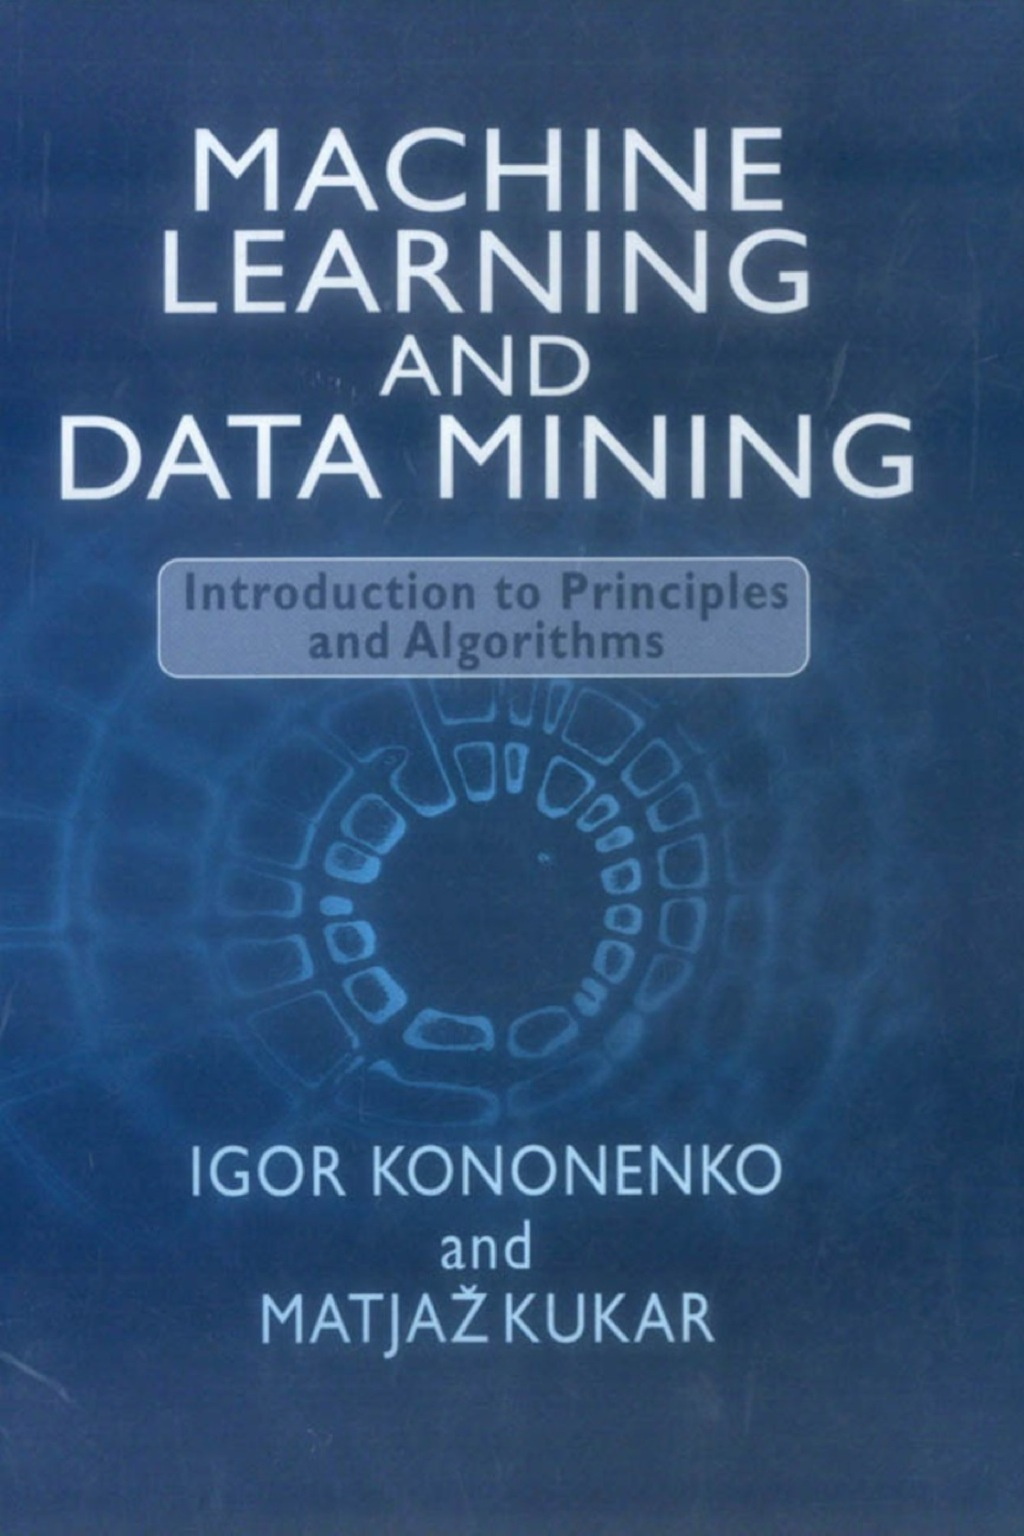 Machine Learning and Data Mining (ebook) eBooks